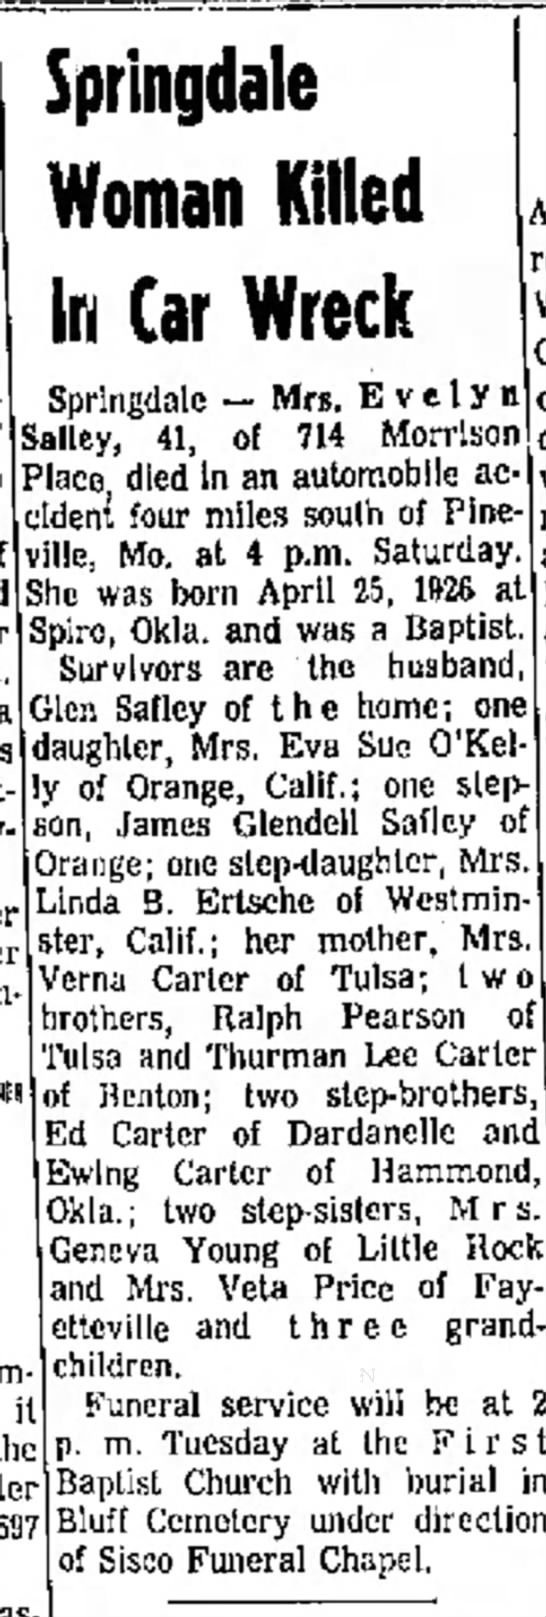 Safley, Evelyn Northwest AR Times, Fayettville 12-4-1967 -